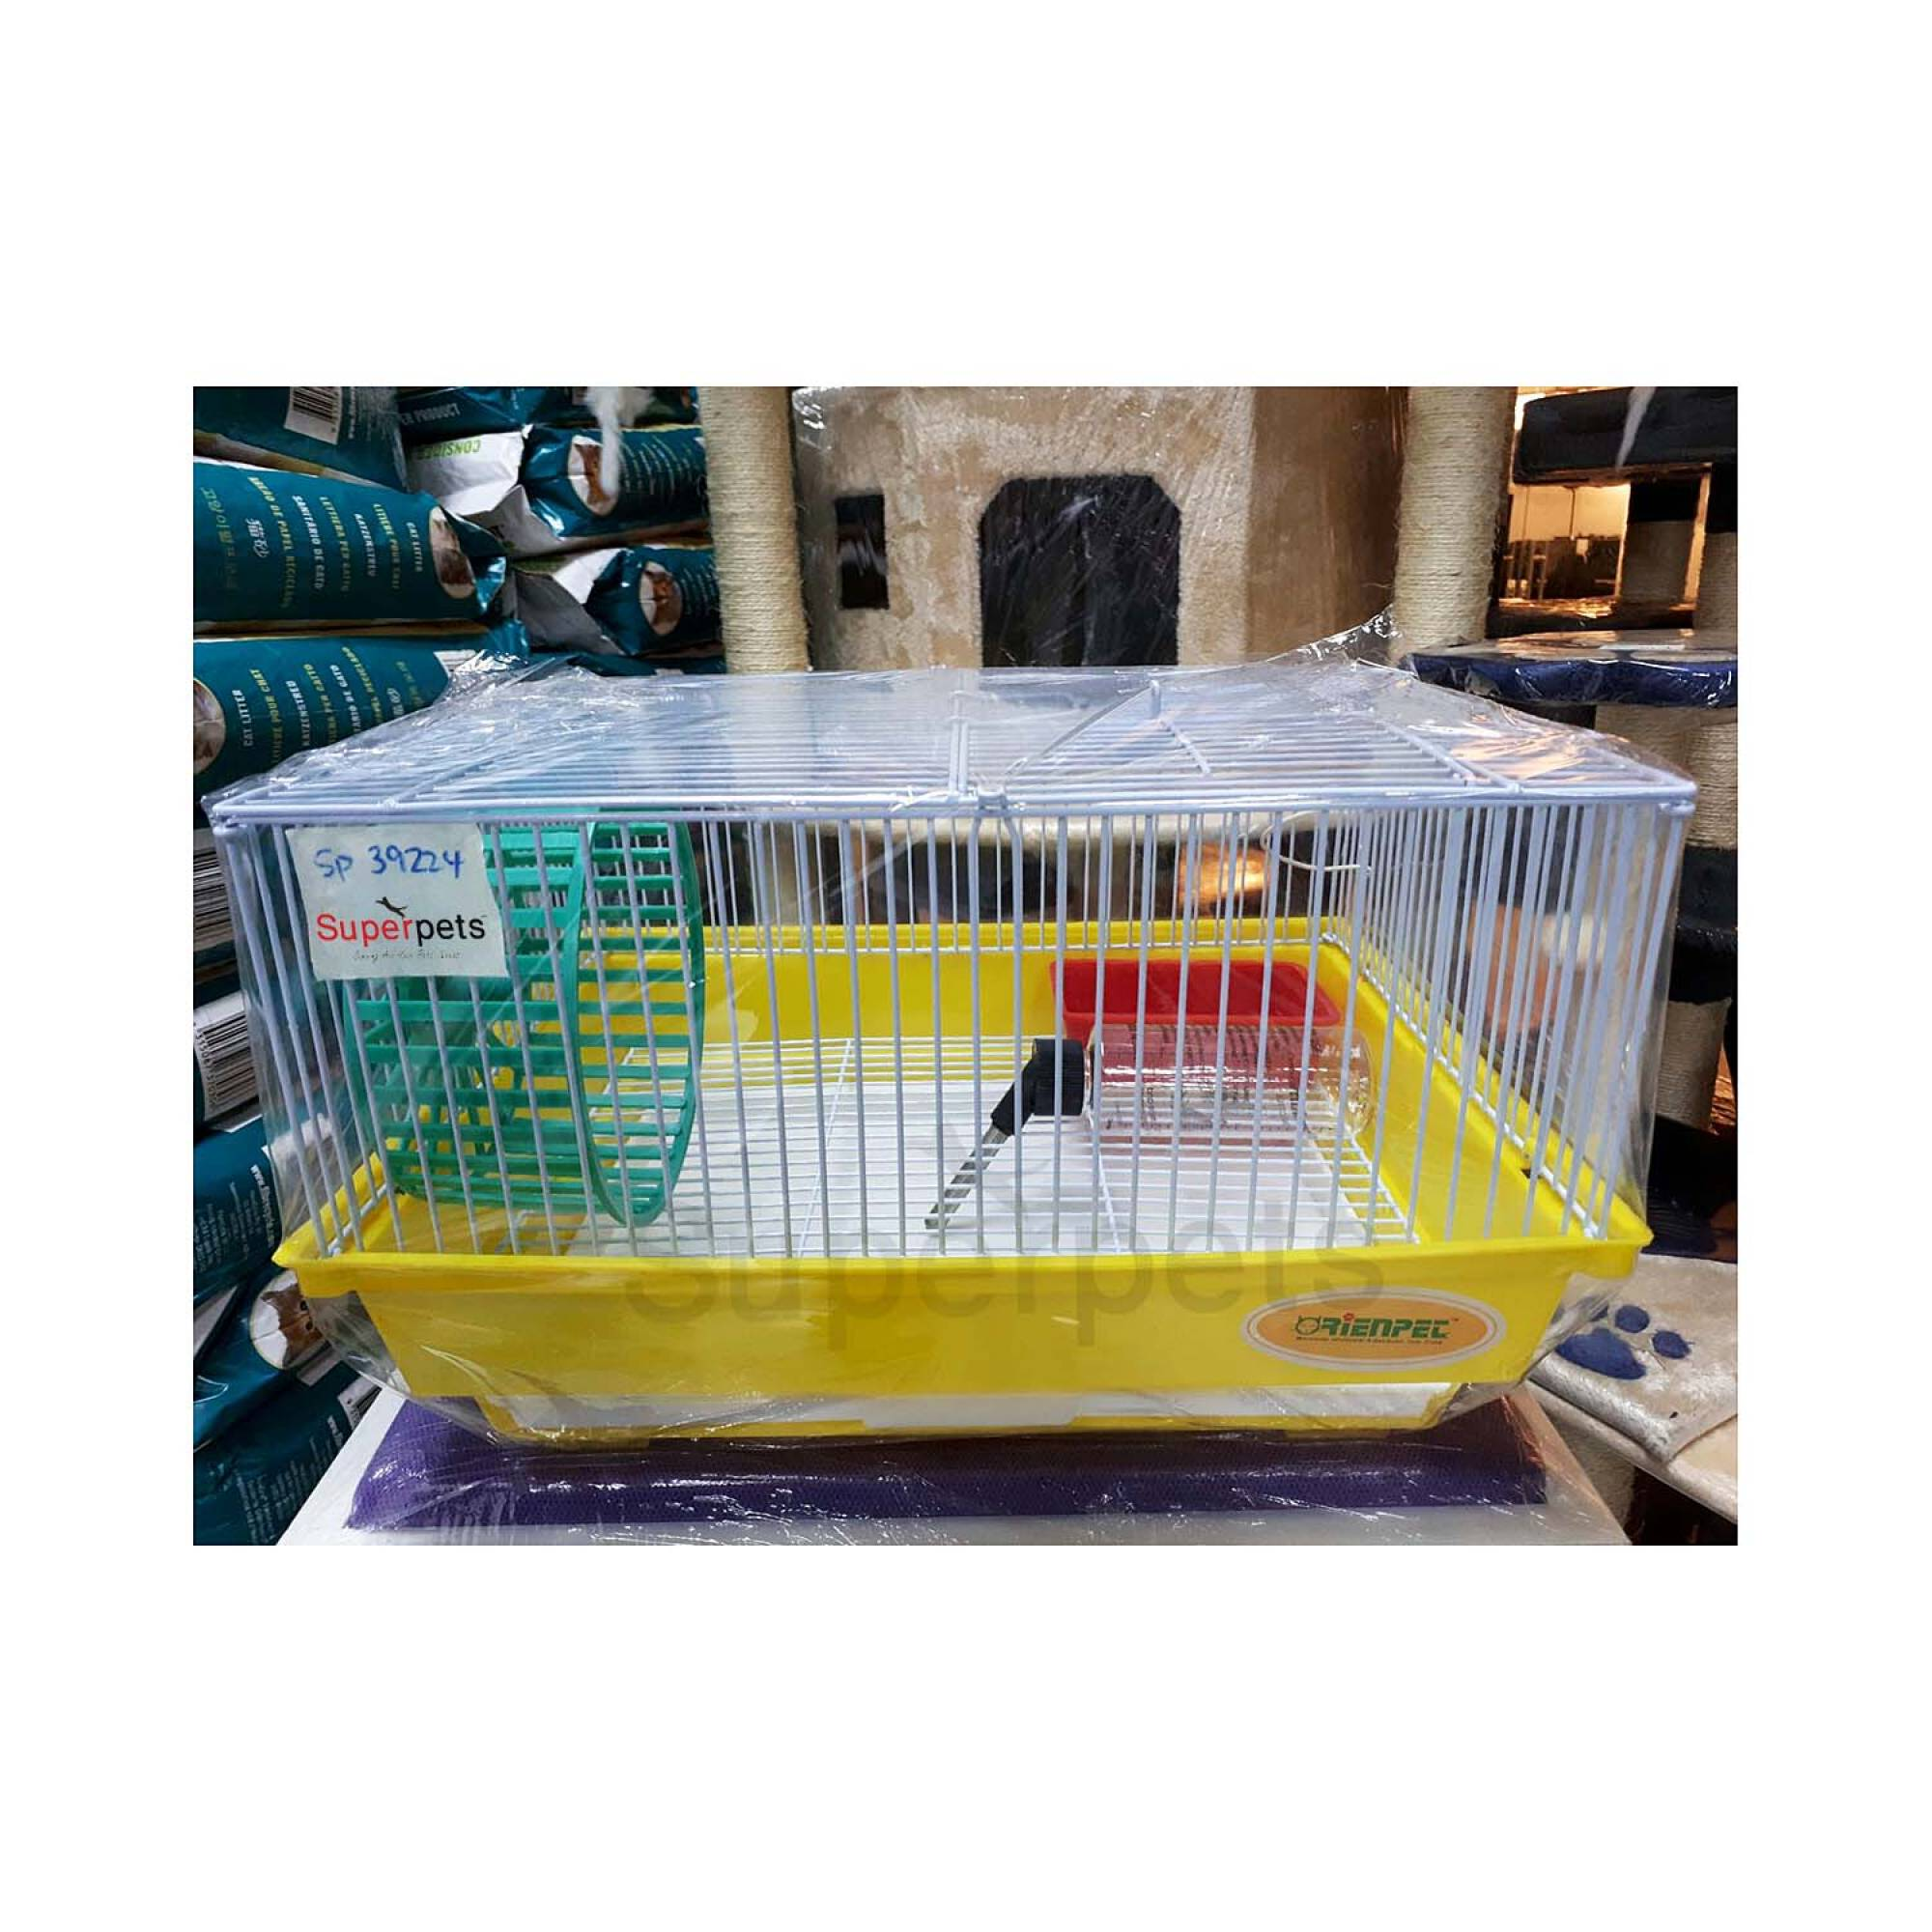 OPSP39224 Hamster Cage - Blue / Green / Yellow - Yellow